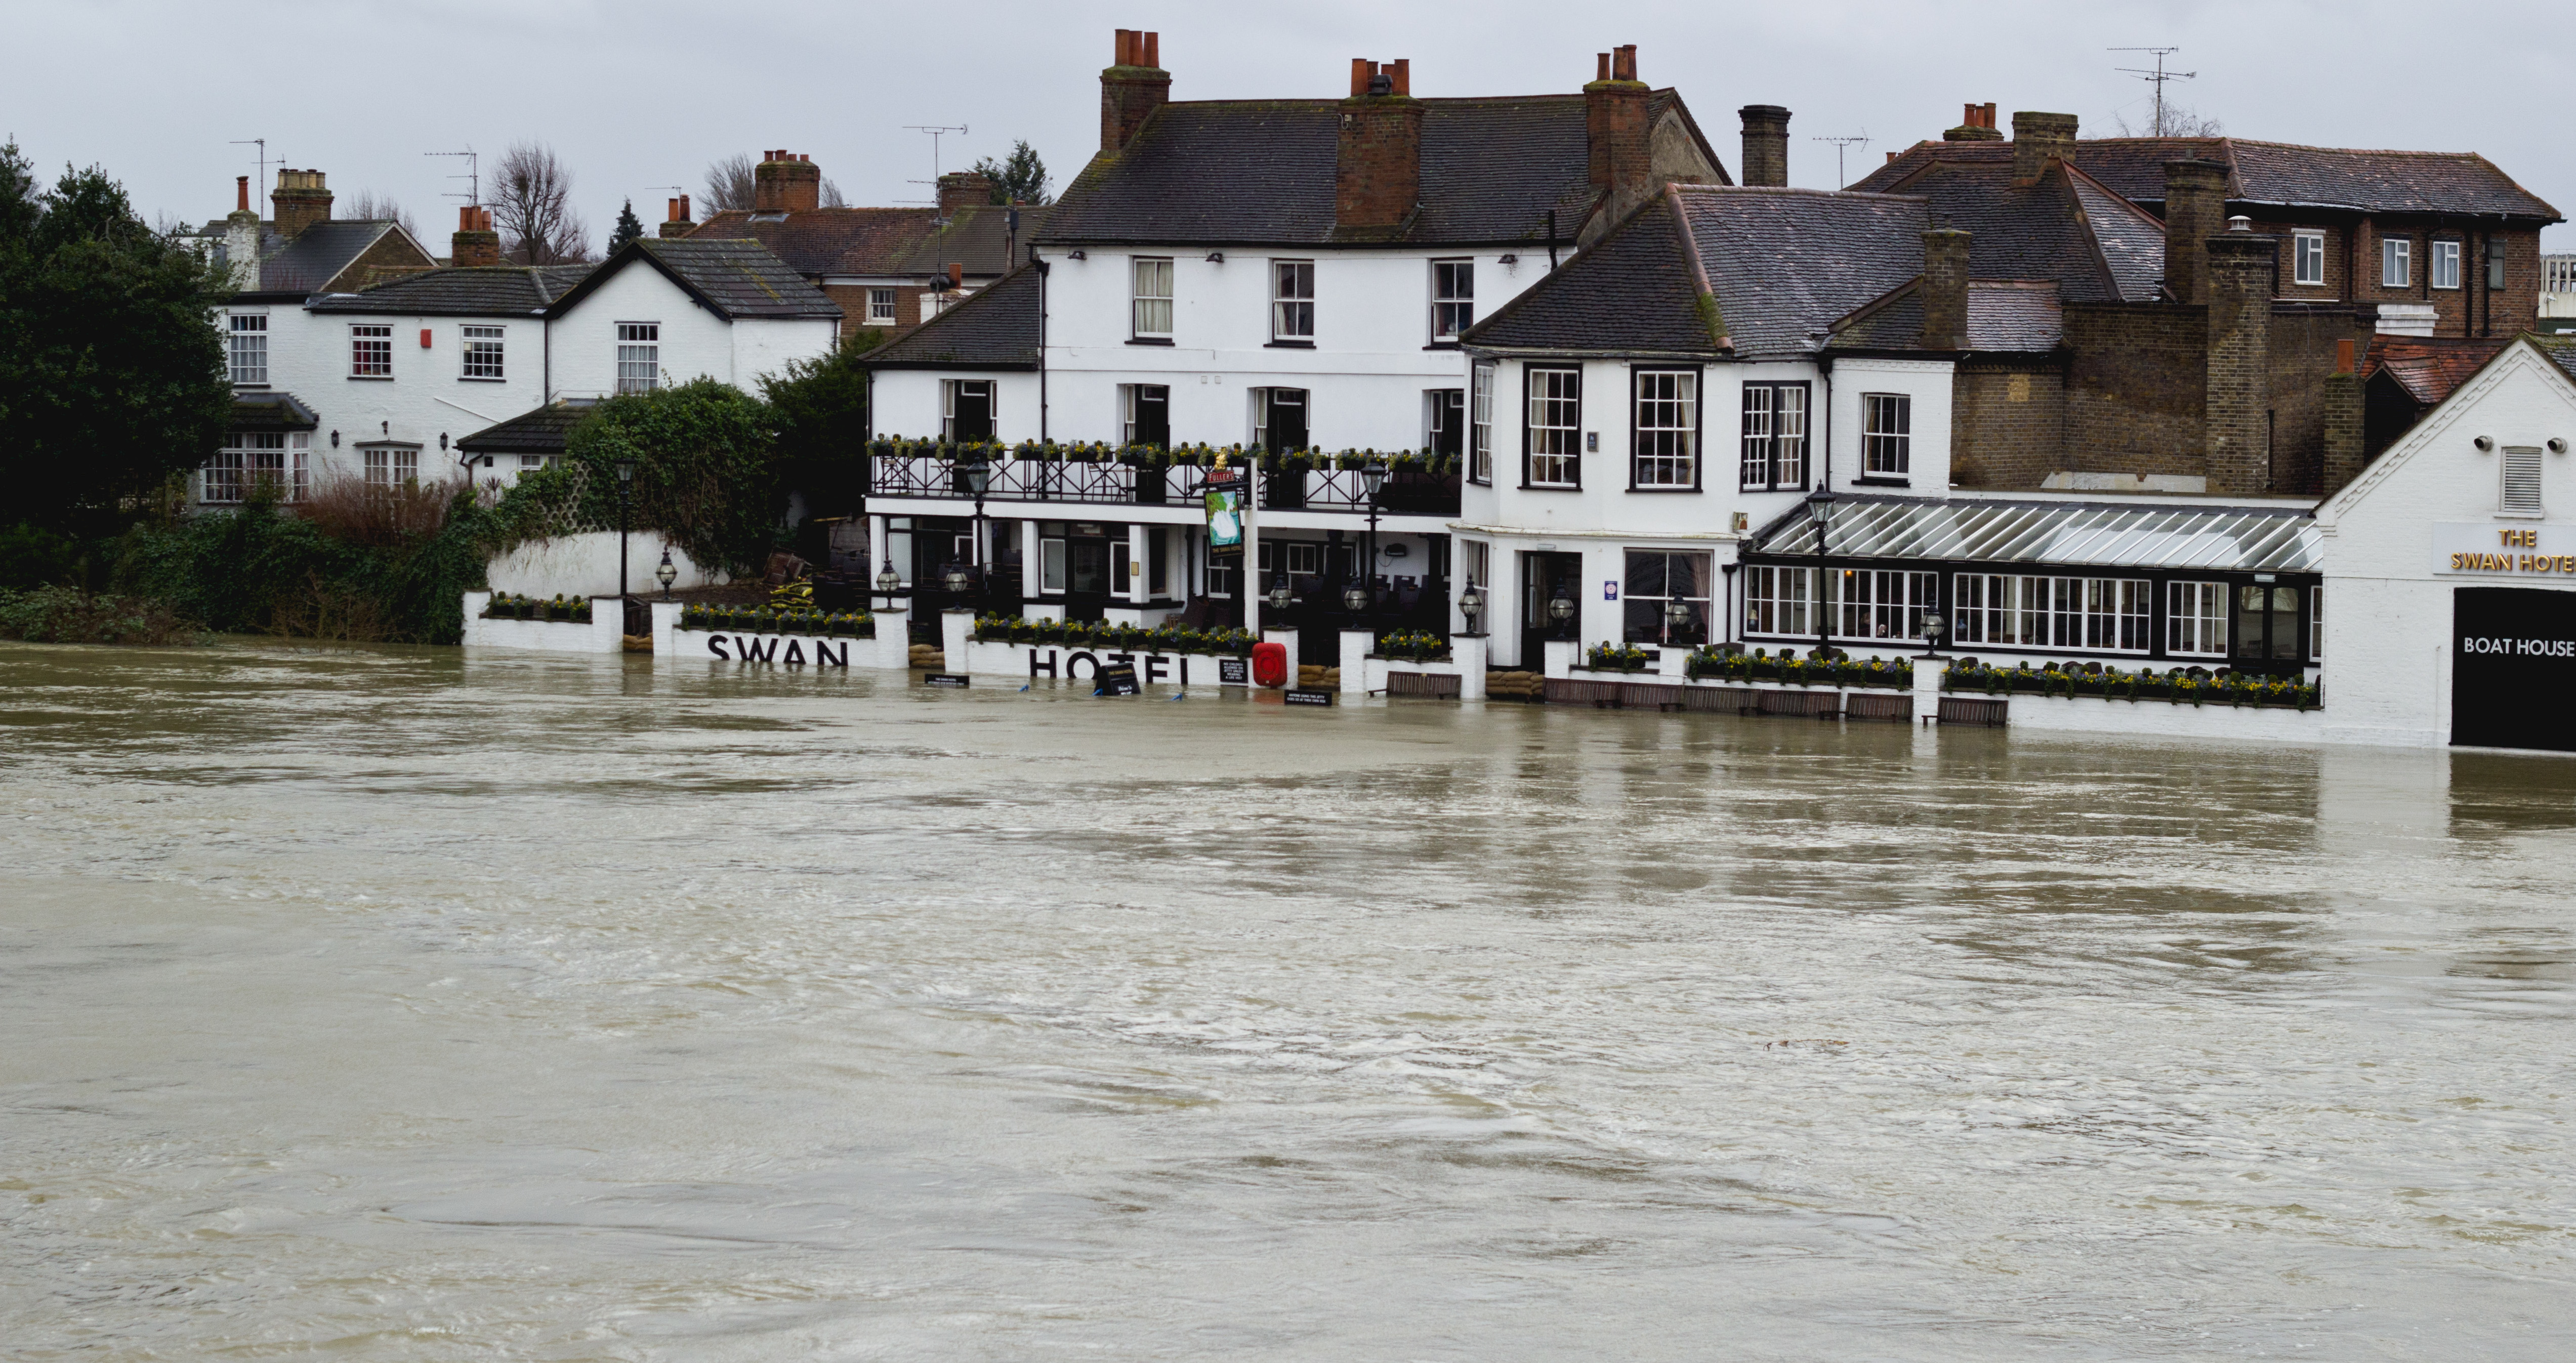 UK_Floods,_Staines-upon-Thames,_Swan_Hotel